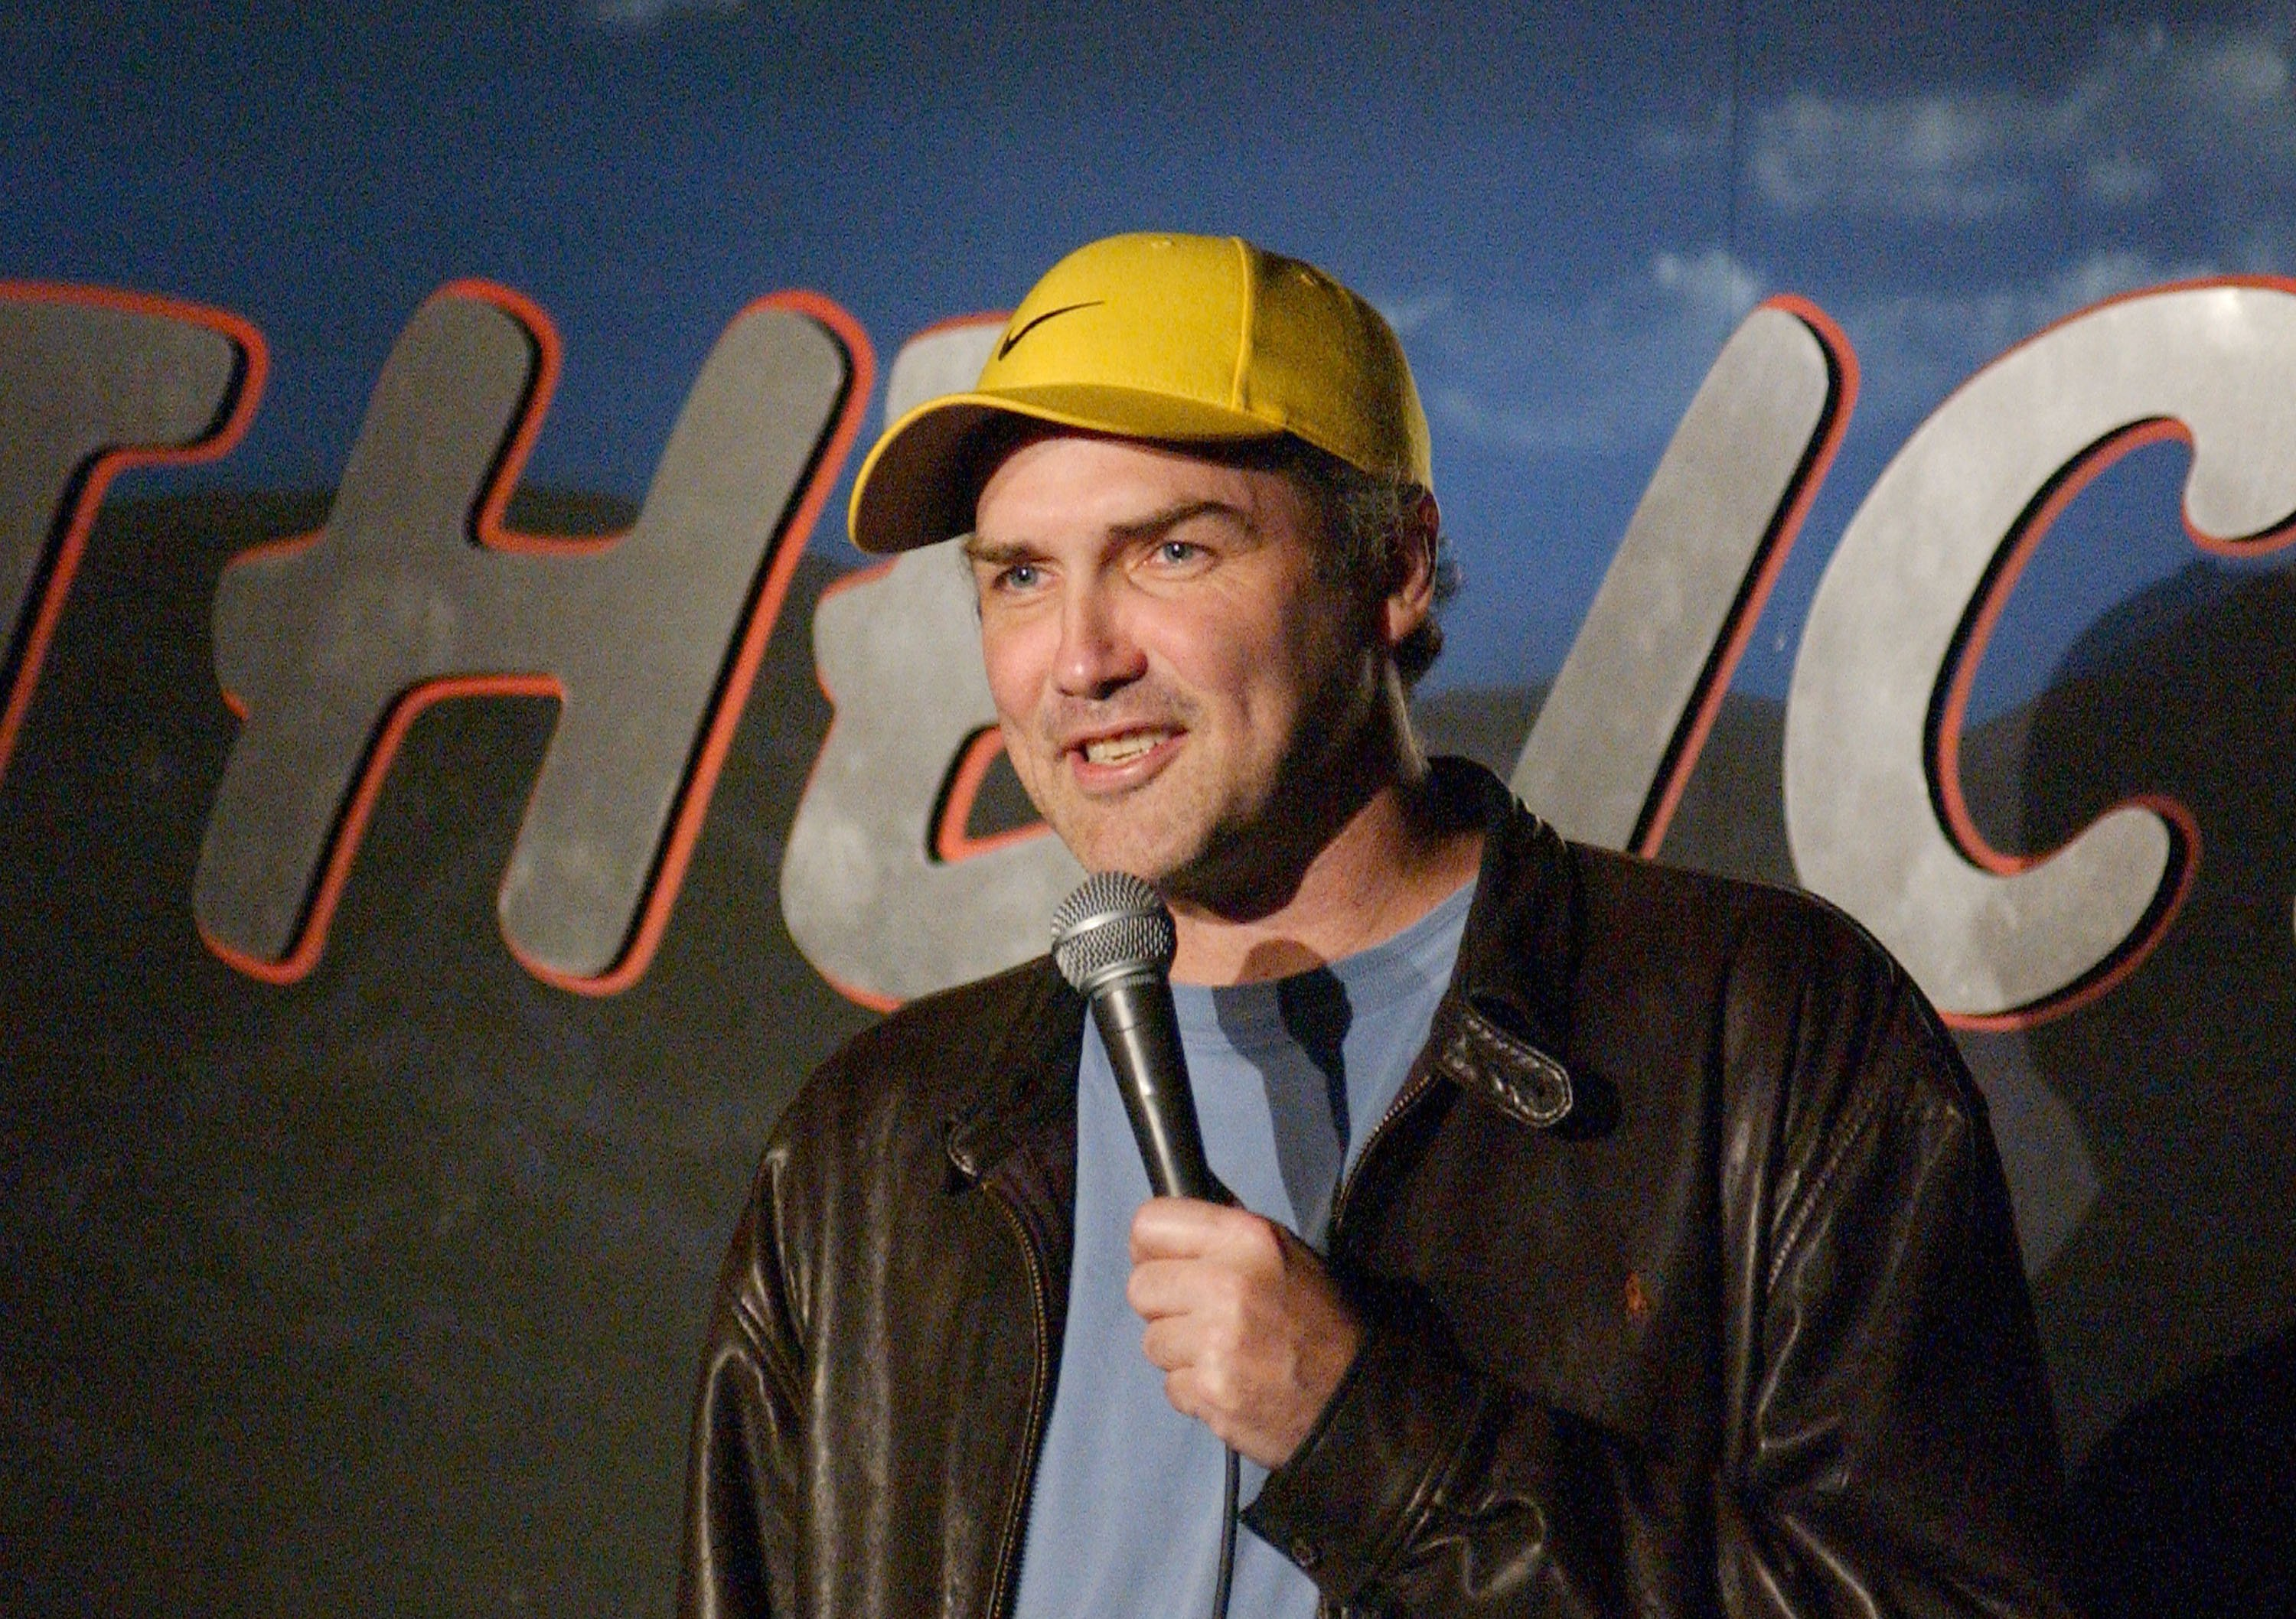 Comedian Norm MacDonald Performs at The Ice House